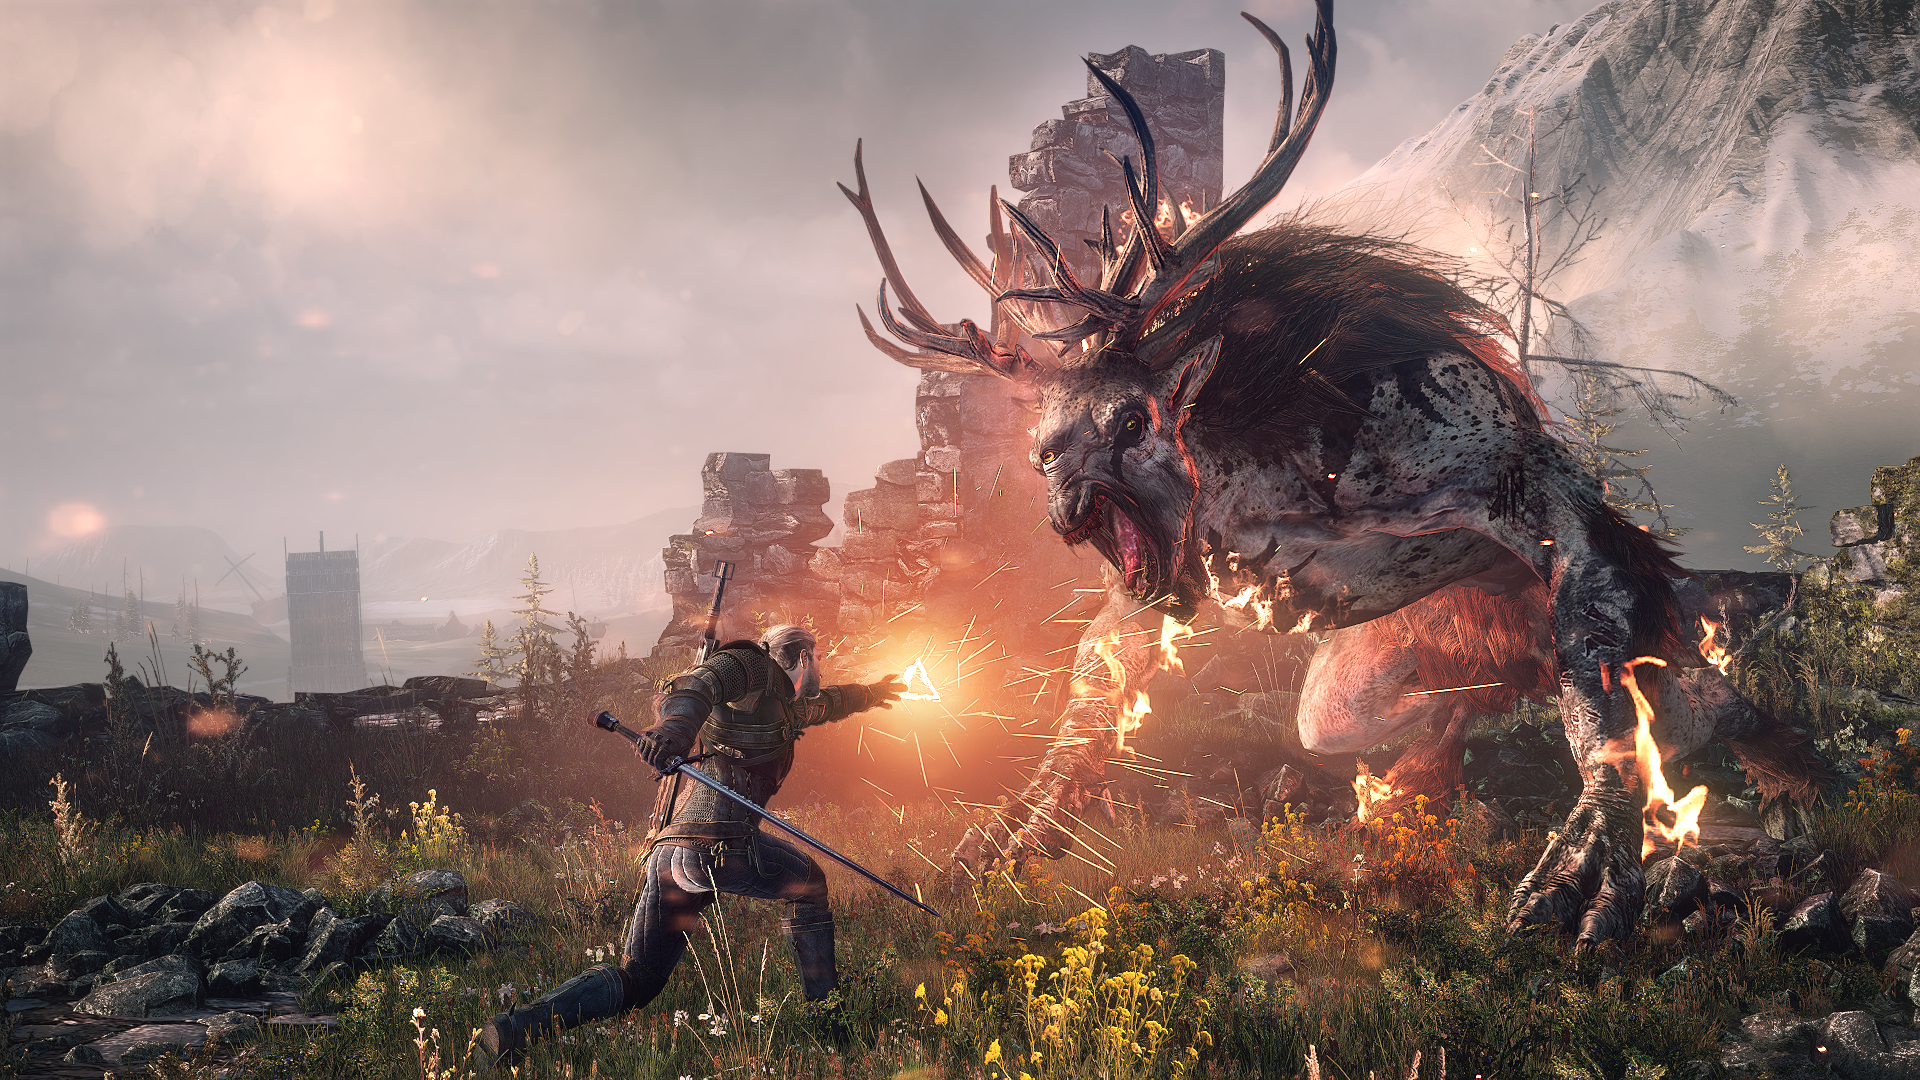 Thw Witcher 3 combat has been redesigned